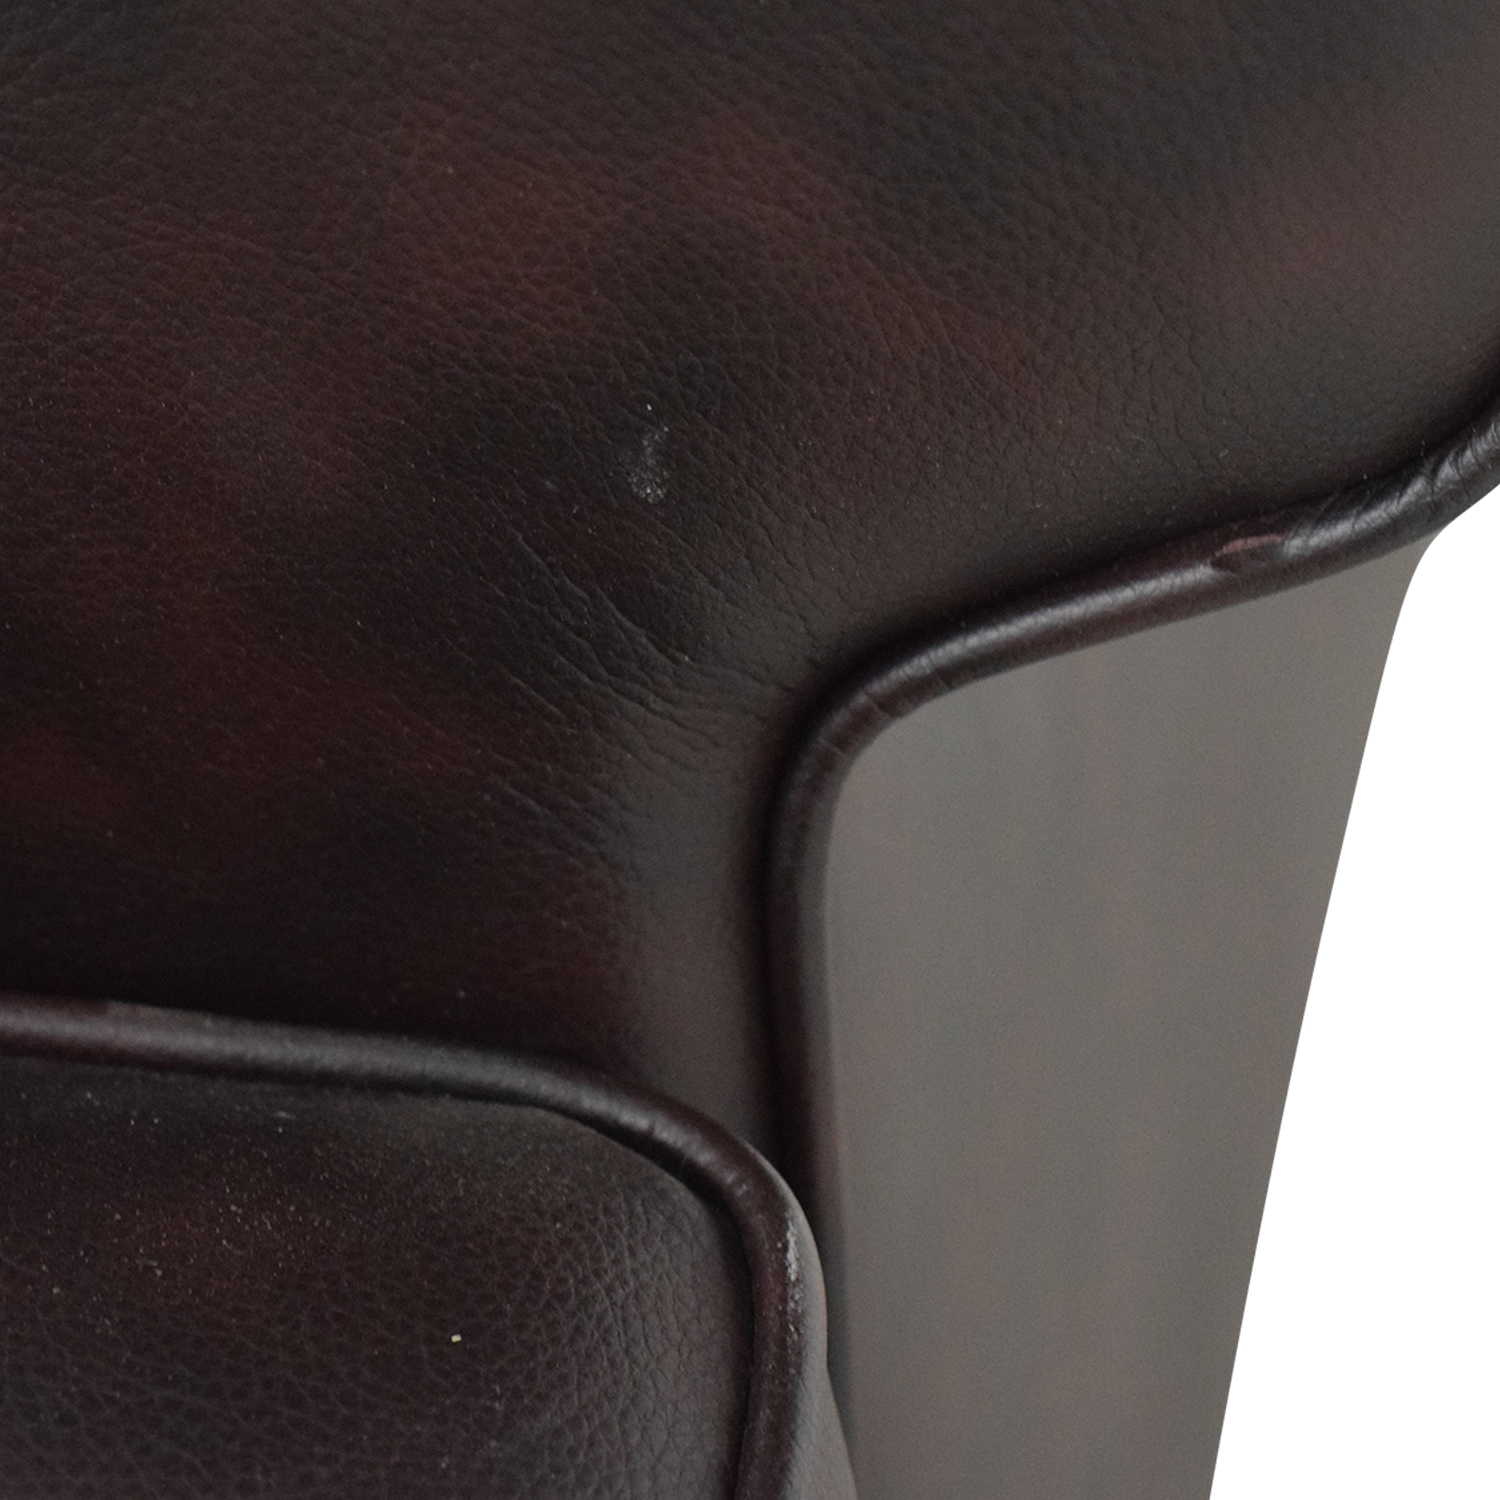 Pier 1 Imports Brown Leather Love Seat / Loveseats